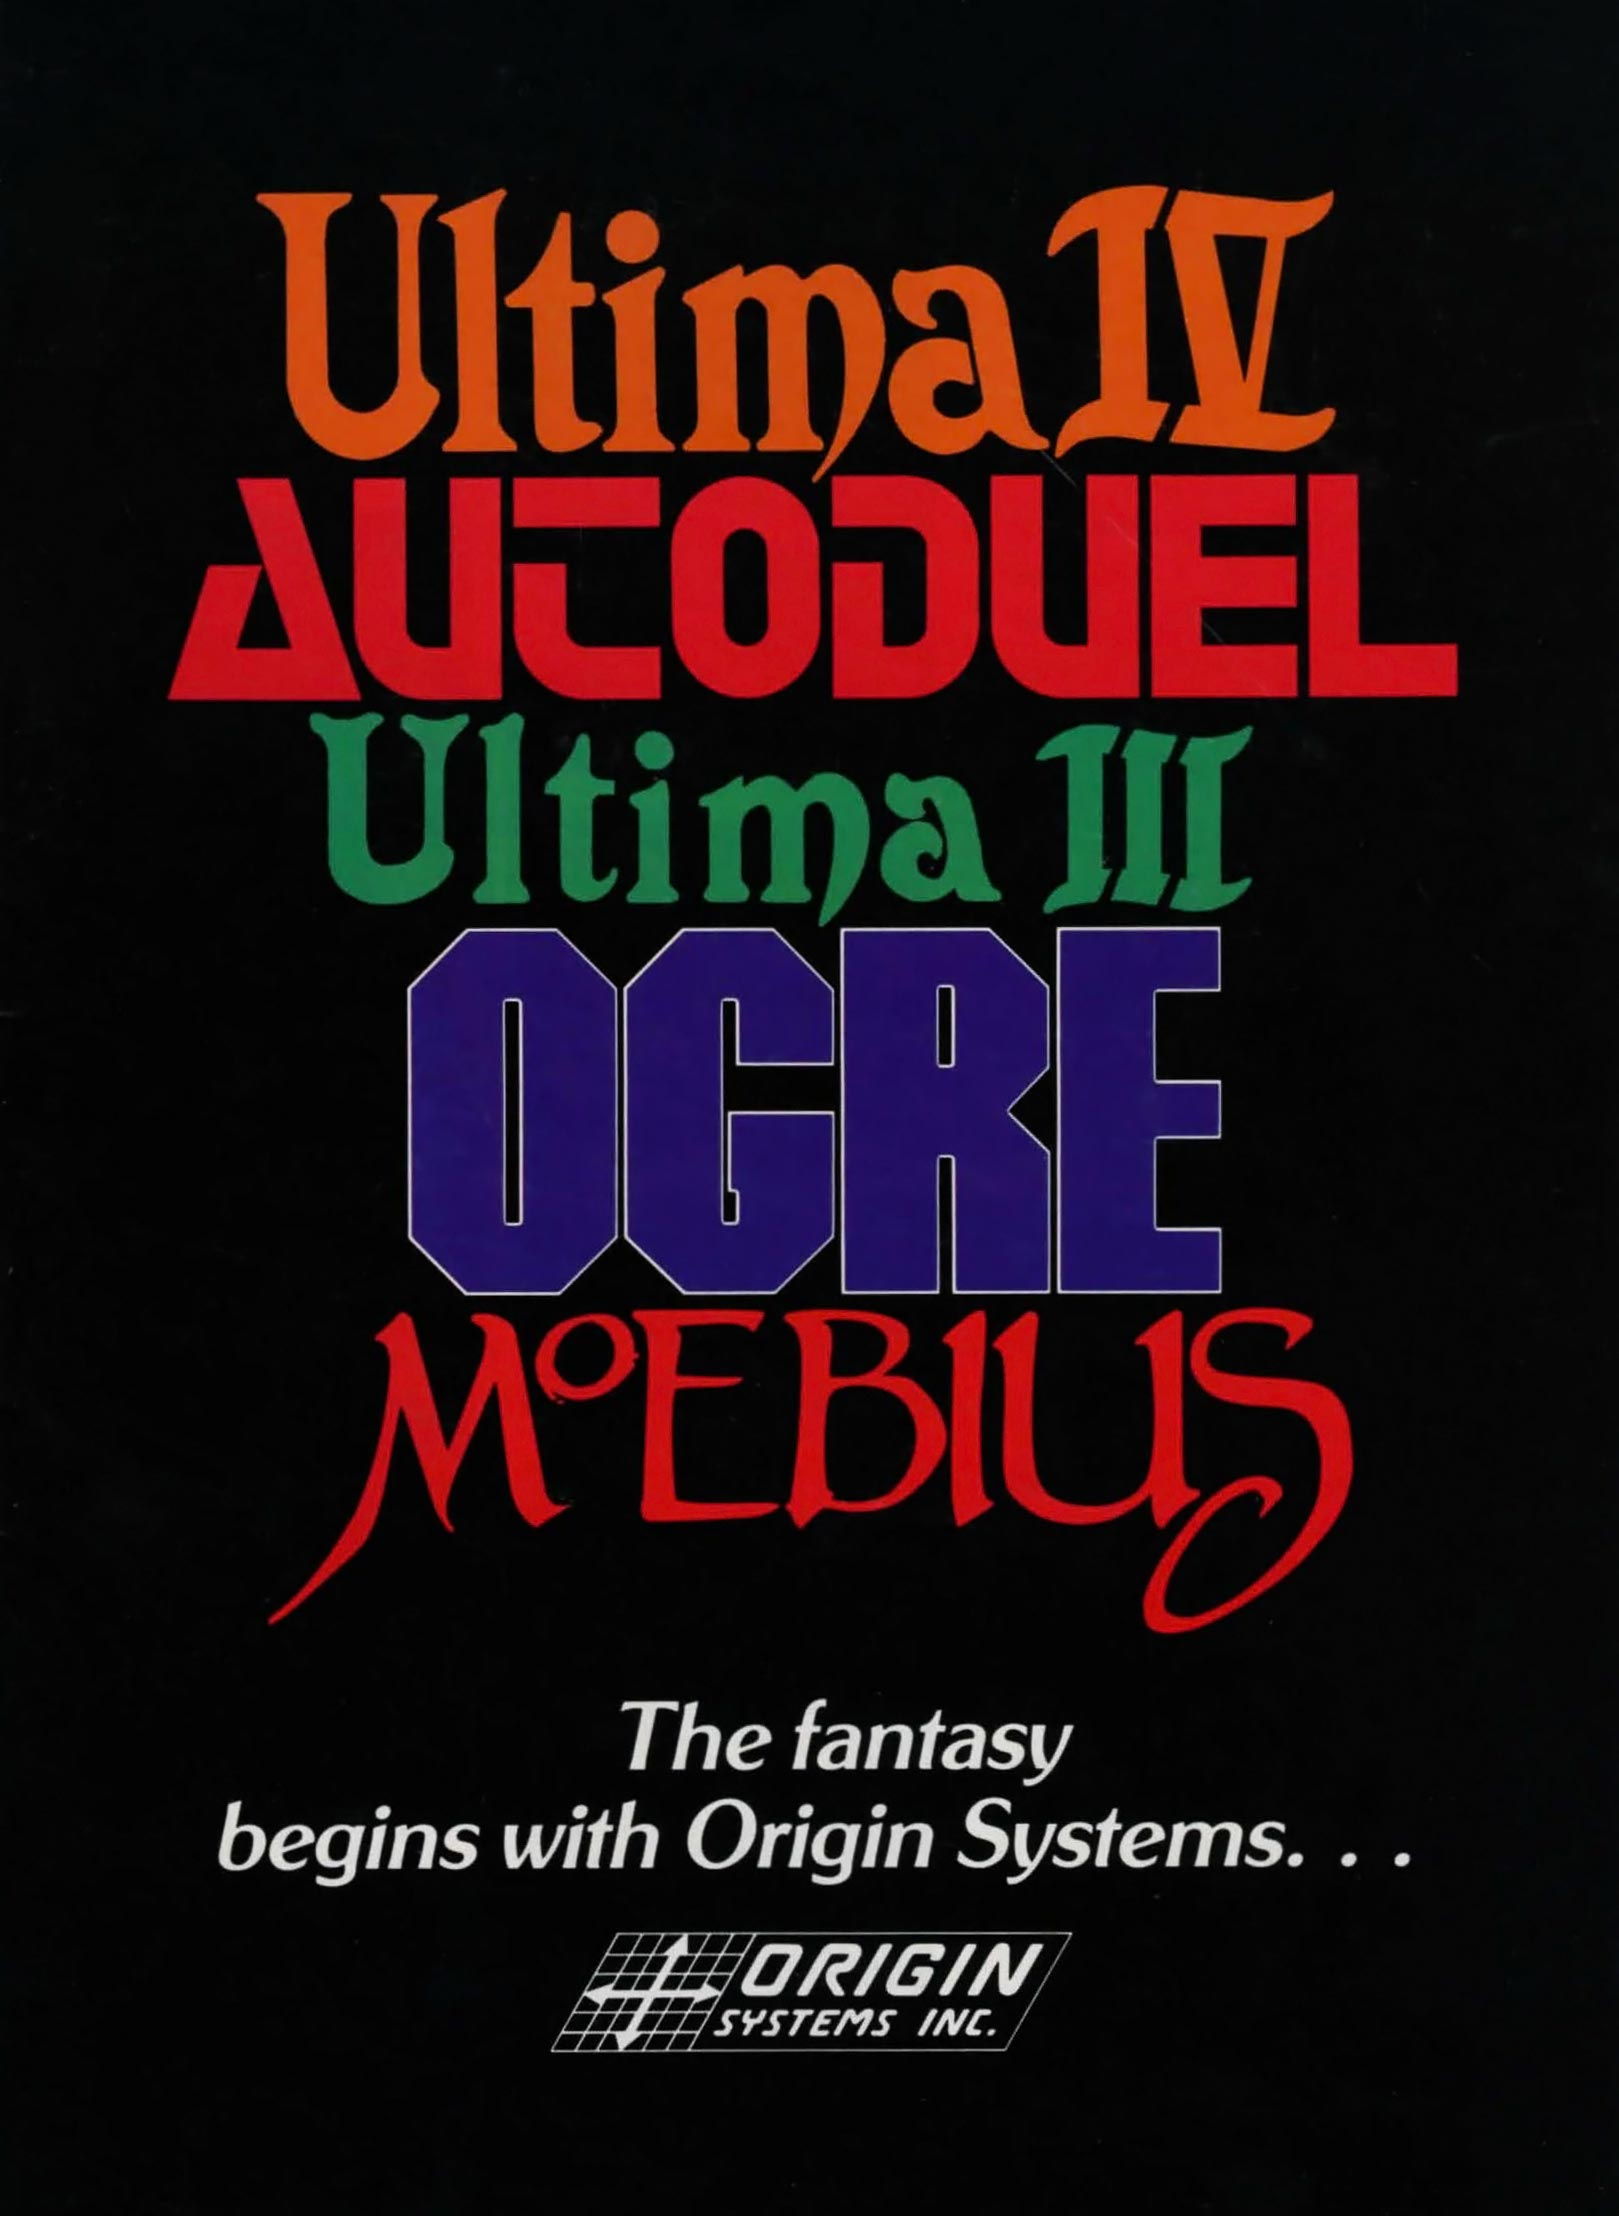 Game such as the Ultima series, computer games by Origin